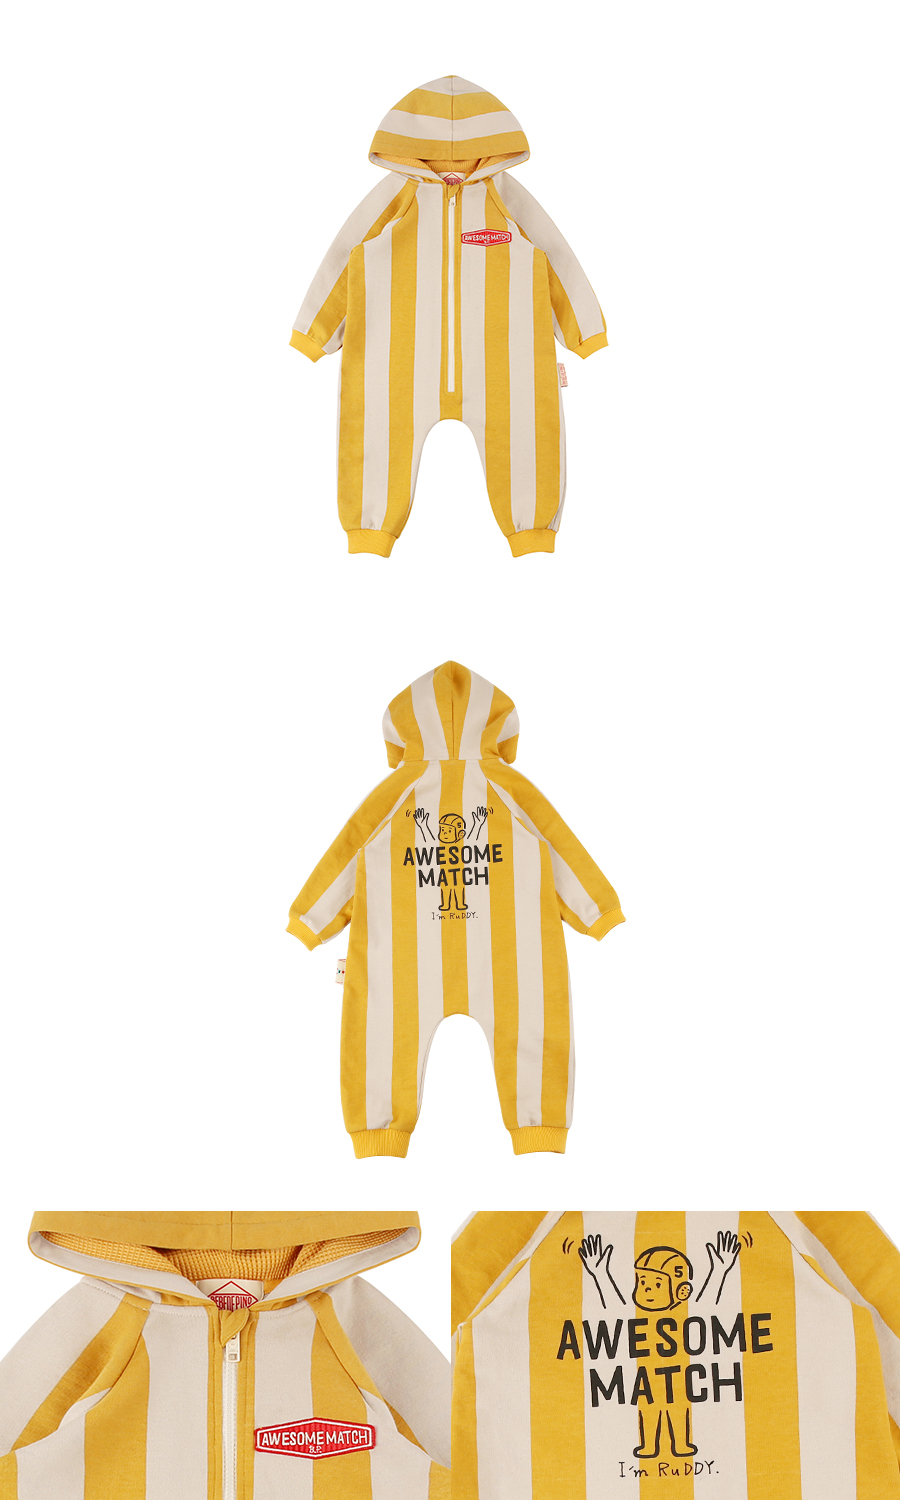 Awesome match baby stripe hoodie overall 상세 이미지